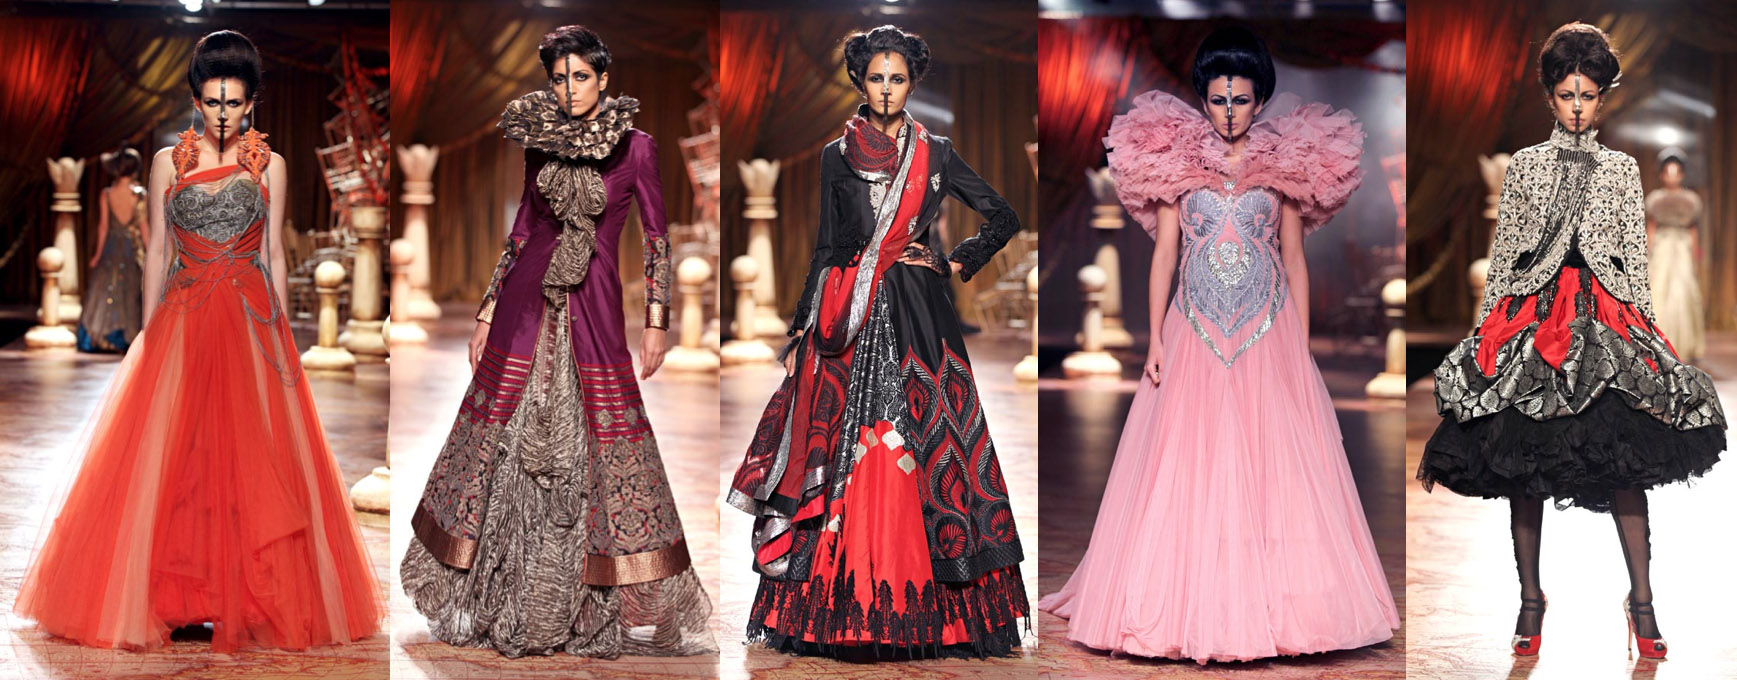 Mba in fashion designing in india 75